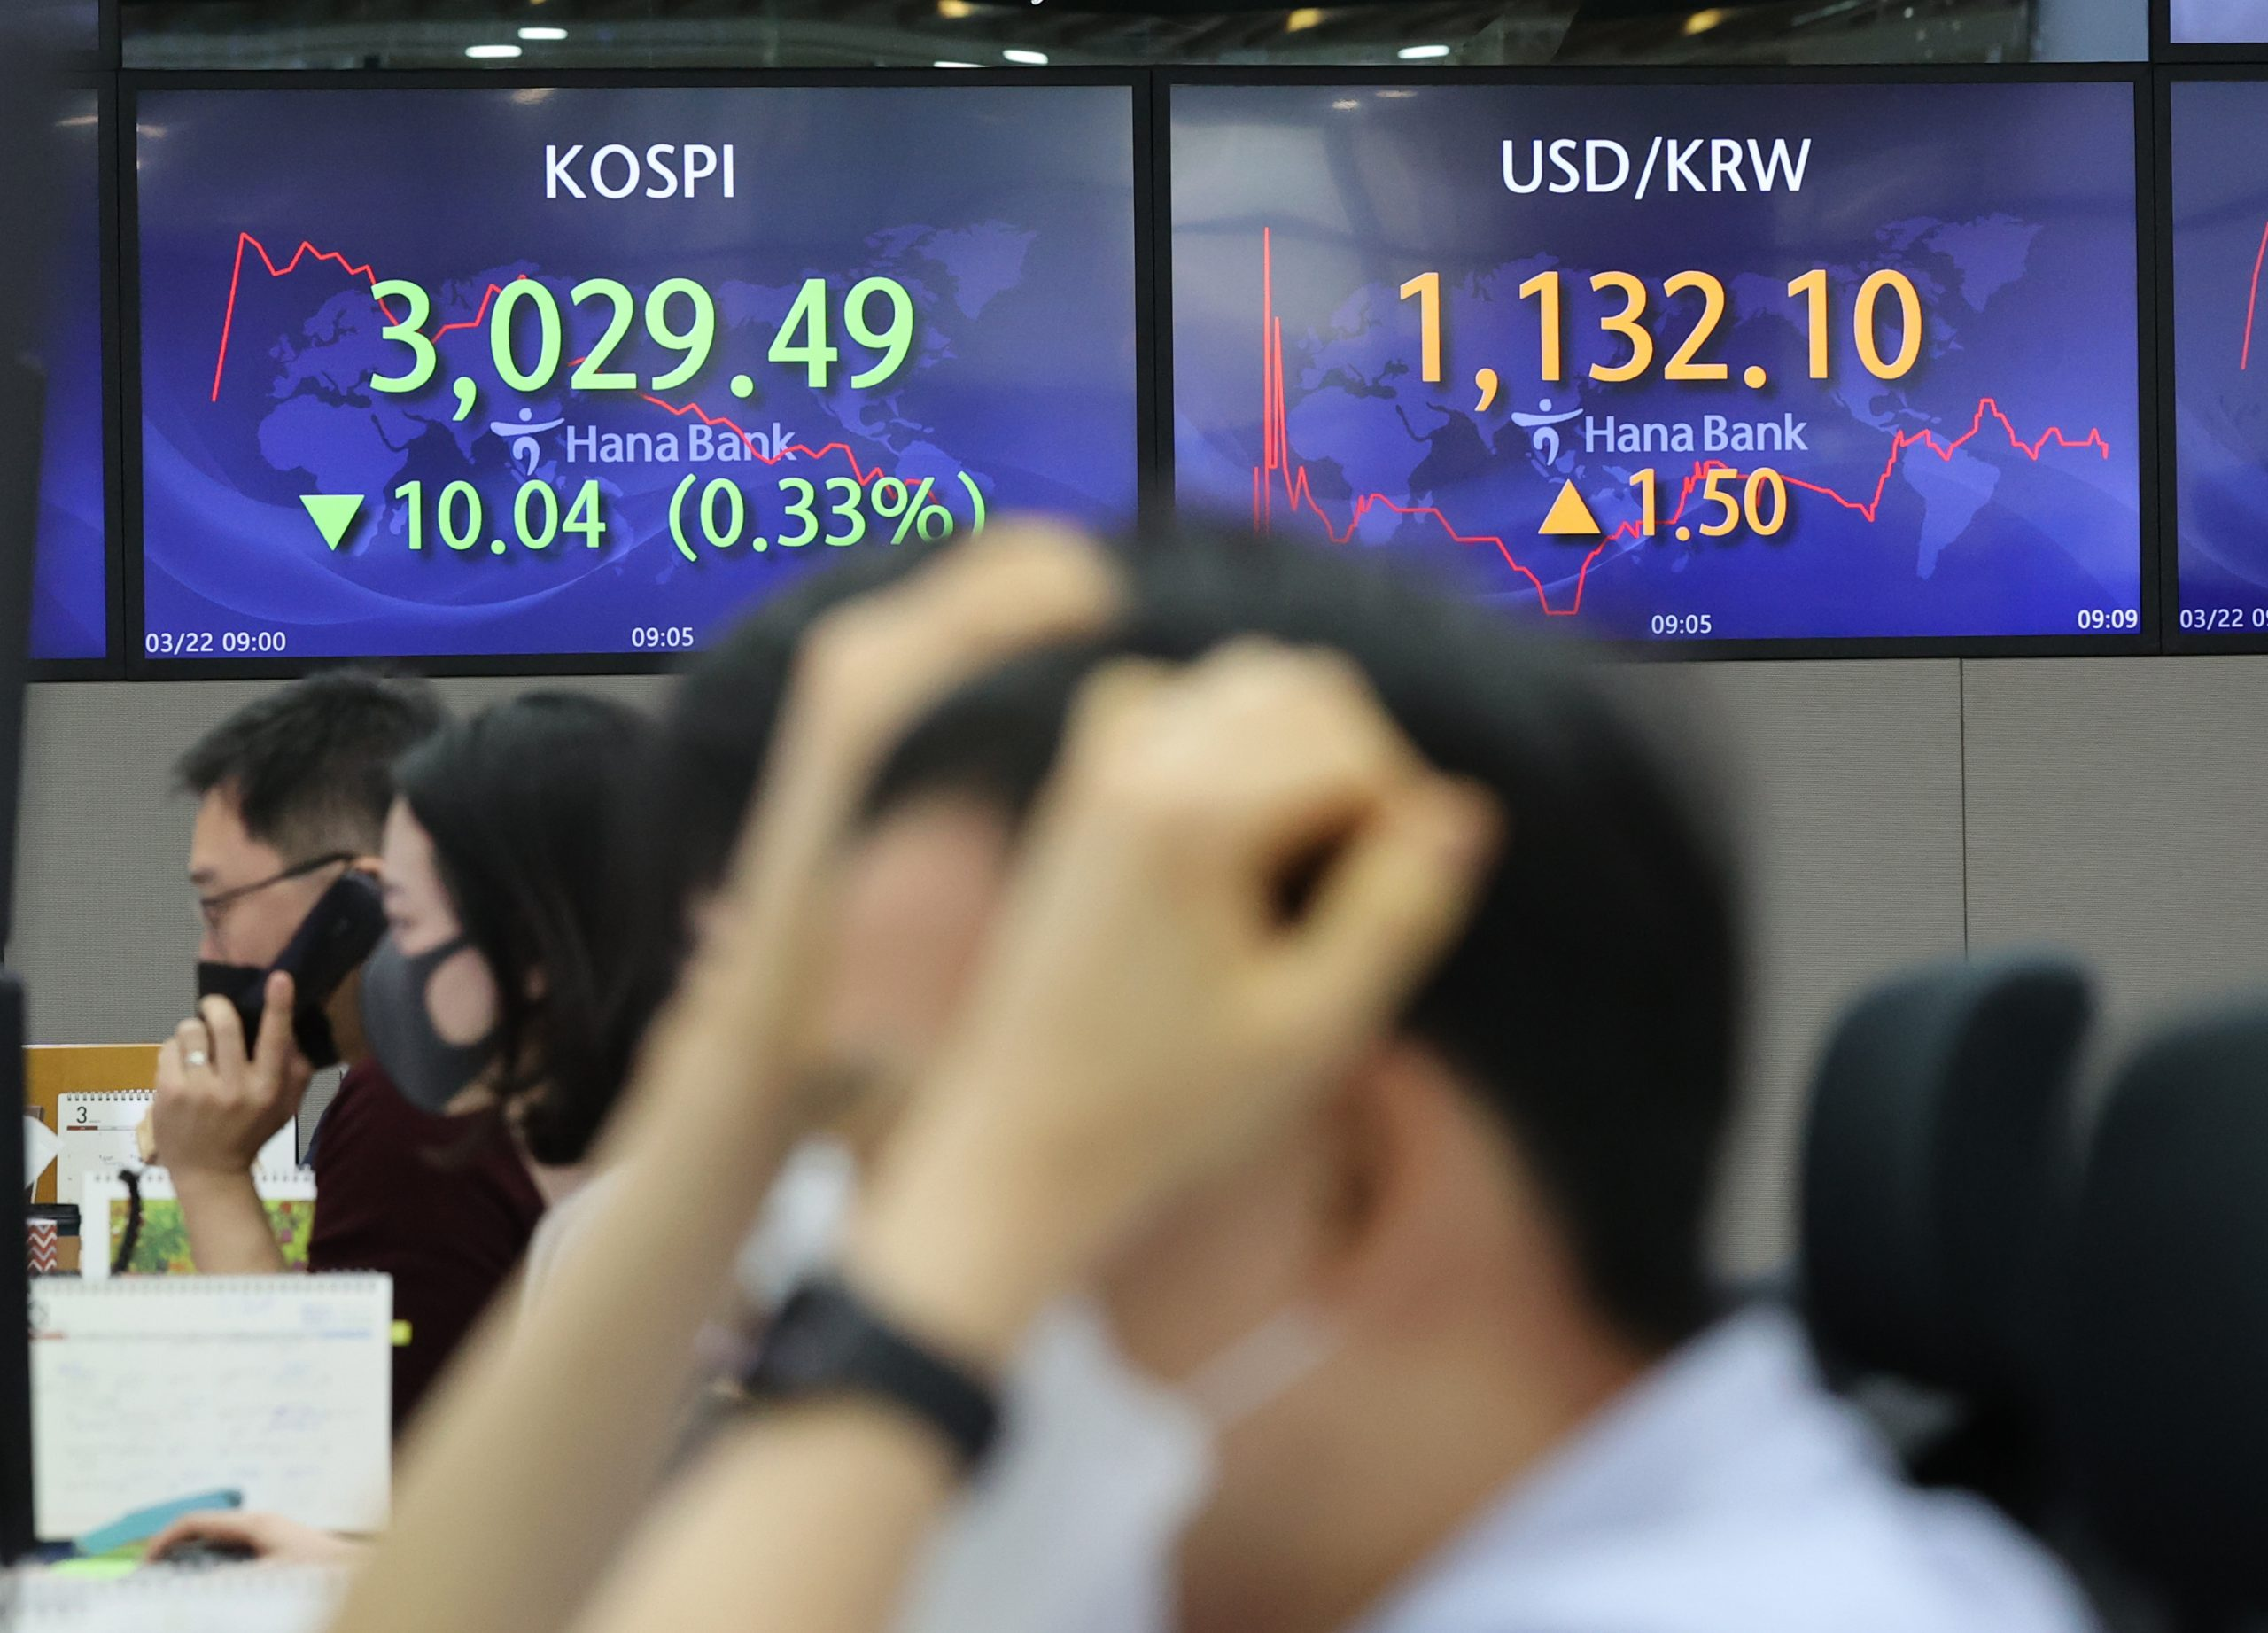 S. Korea to take 'timely' actions to stabilize bond market if necessary: official